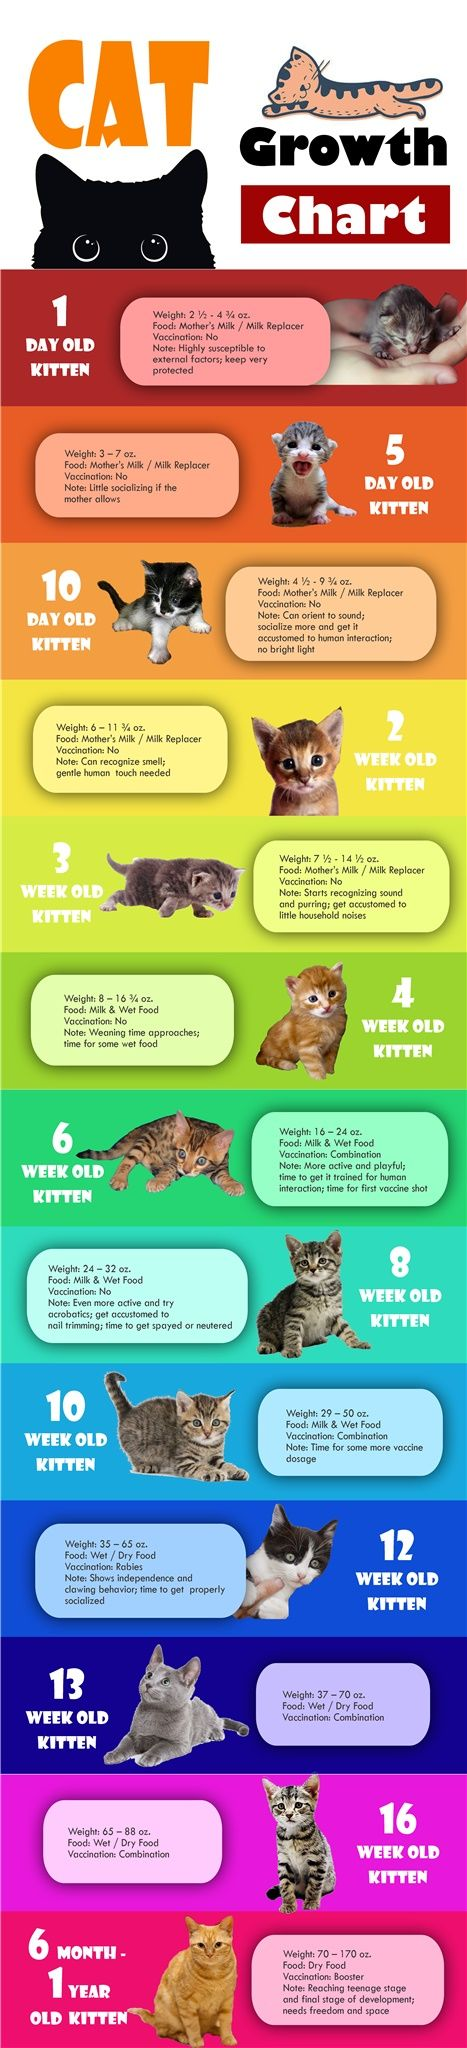 Infographic Kitten Cat Growth Chart By Age Weight And Food 2018 Kittens Cats And Kittens Cat Infographic